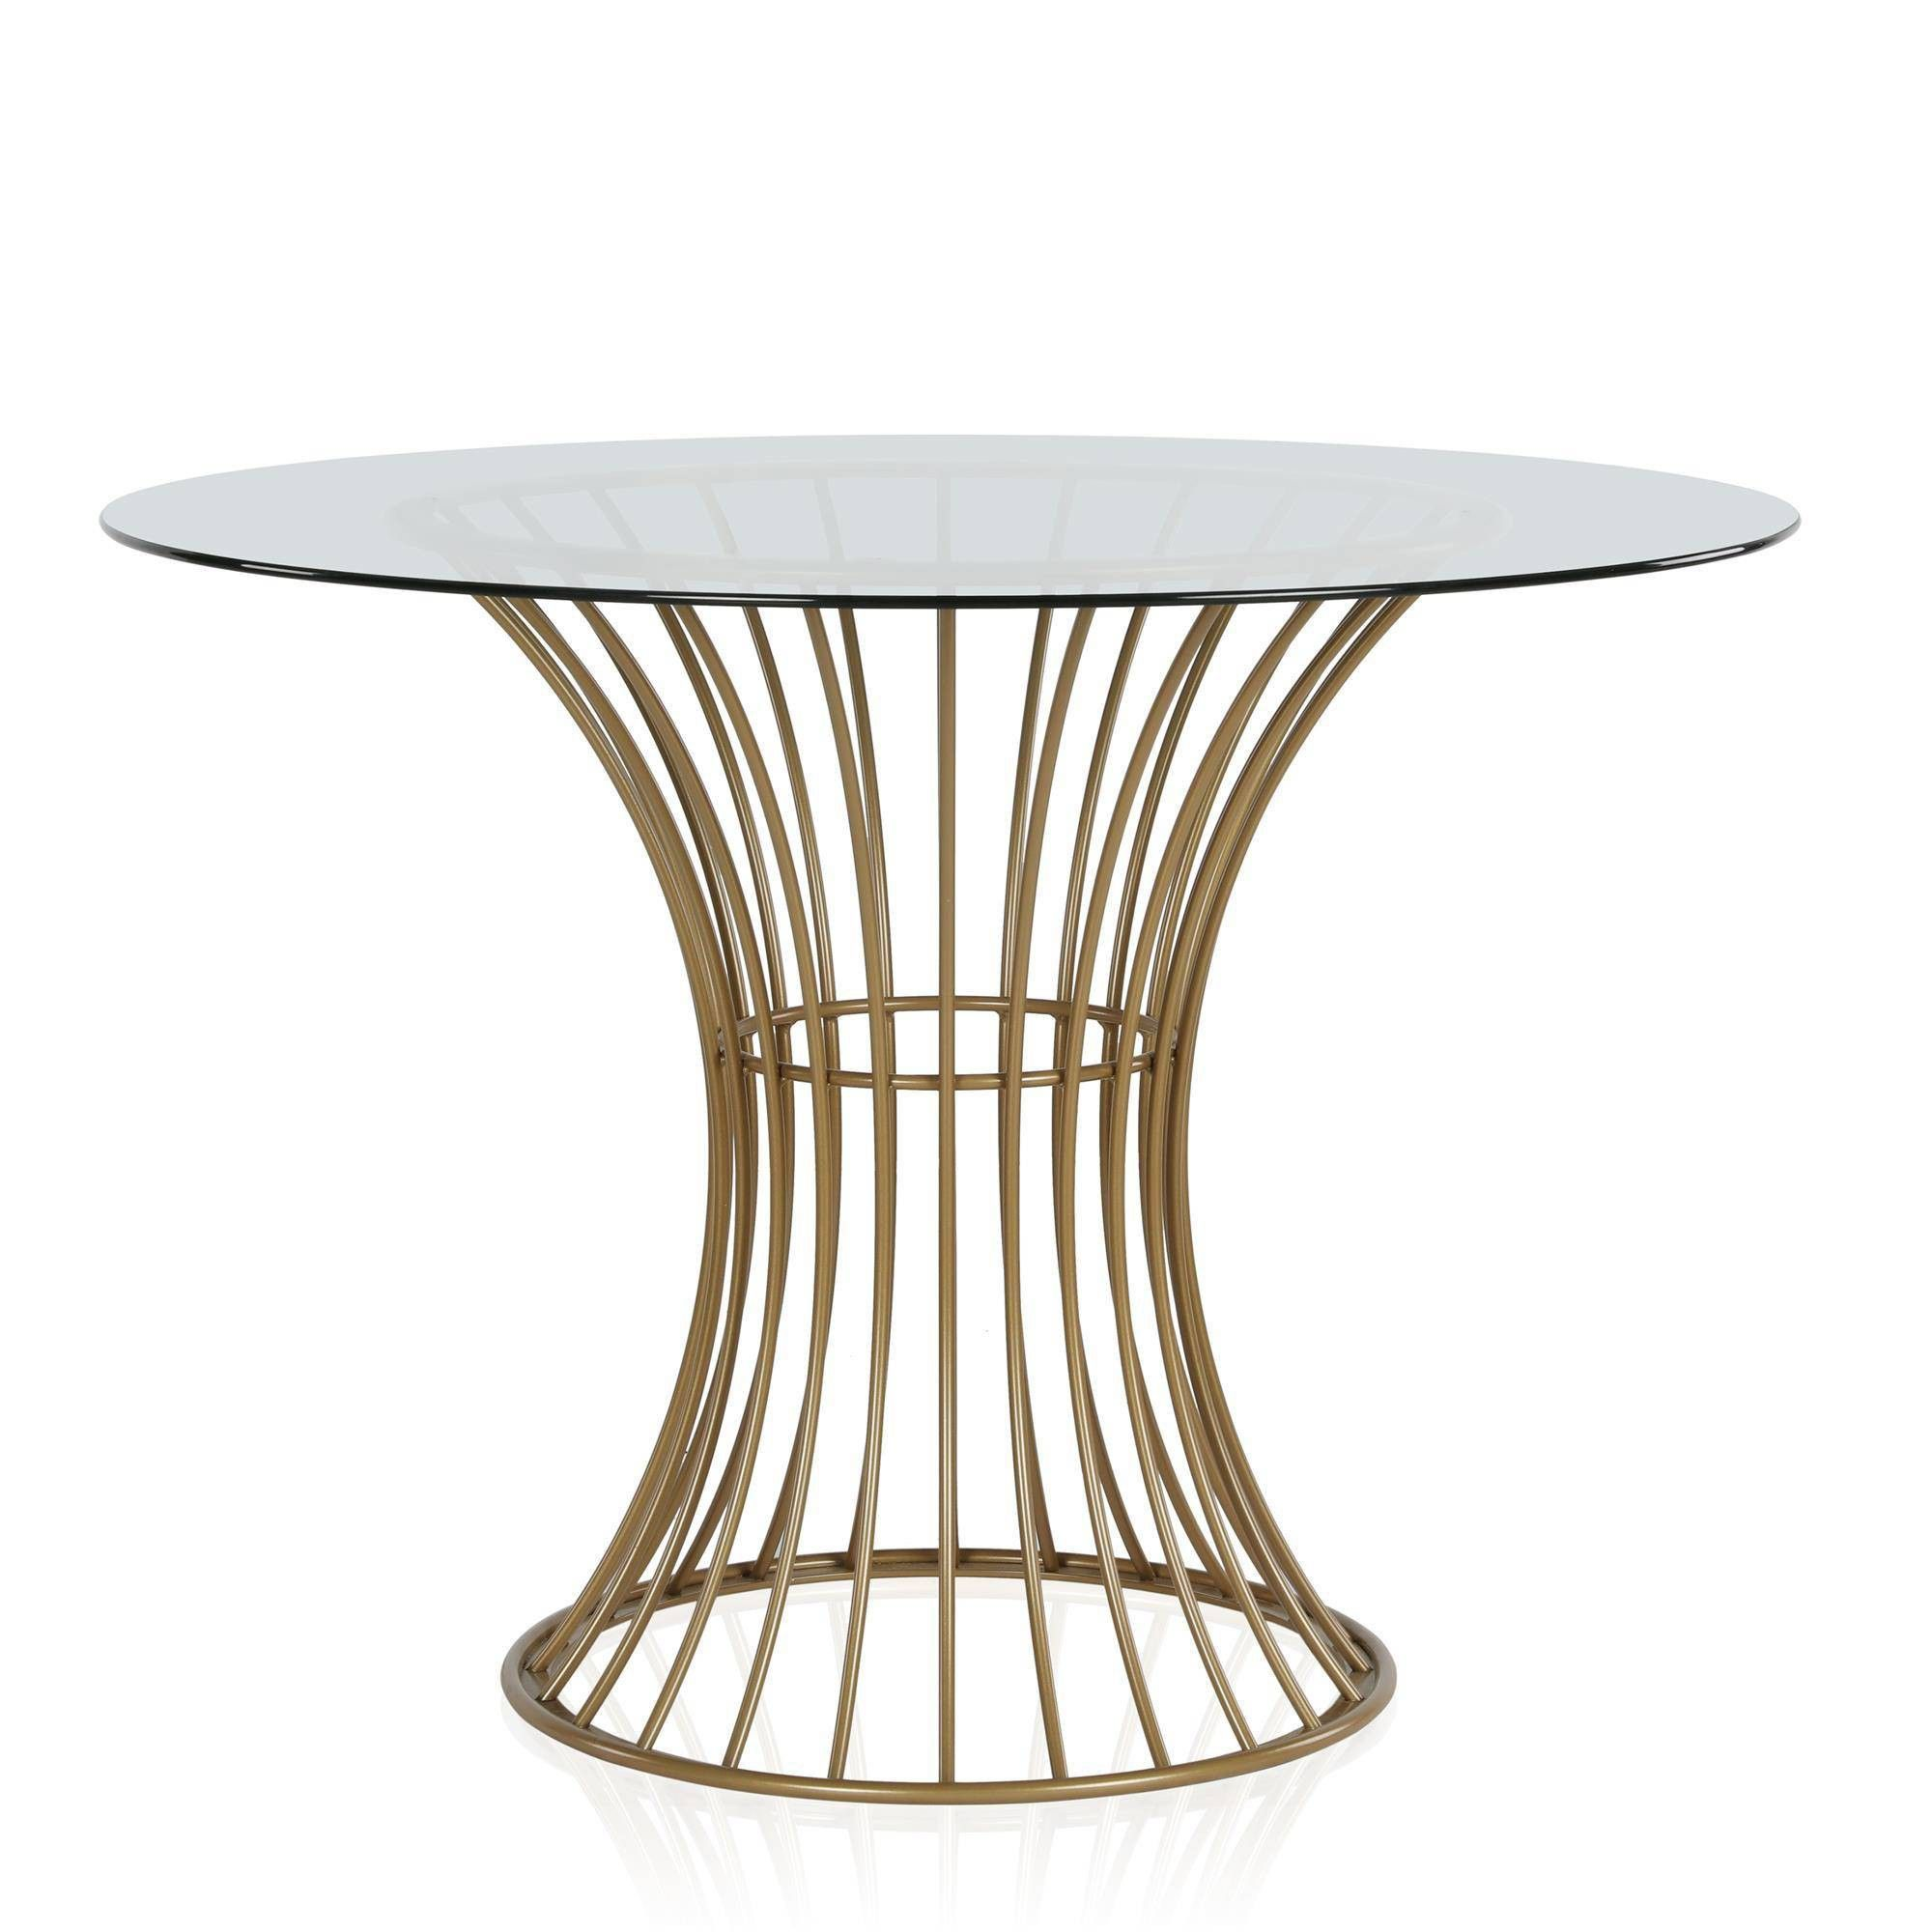 Westwood Glass Top Dining Table With Tempered Glass Brass Cosmoliving By Cosmopolitan Interer Dizajn Interera Dizajn